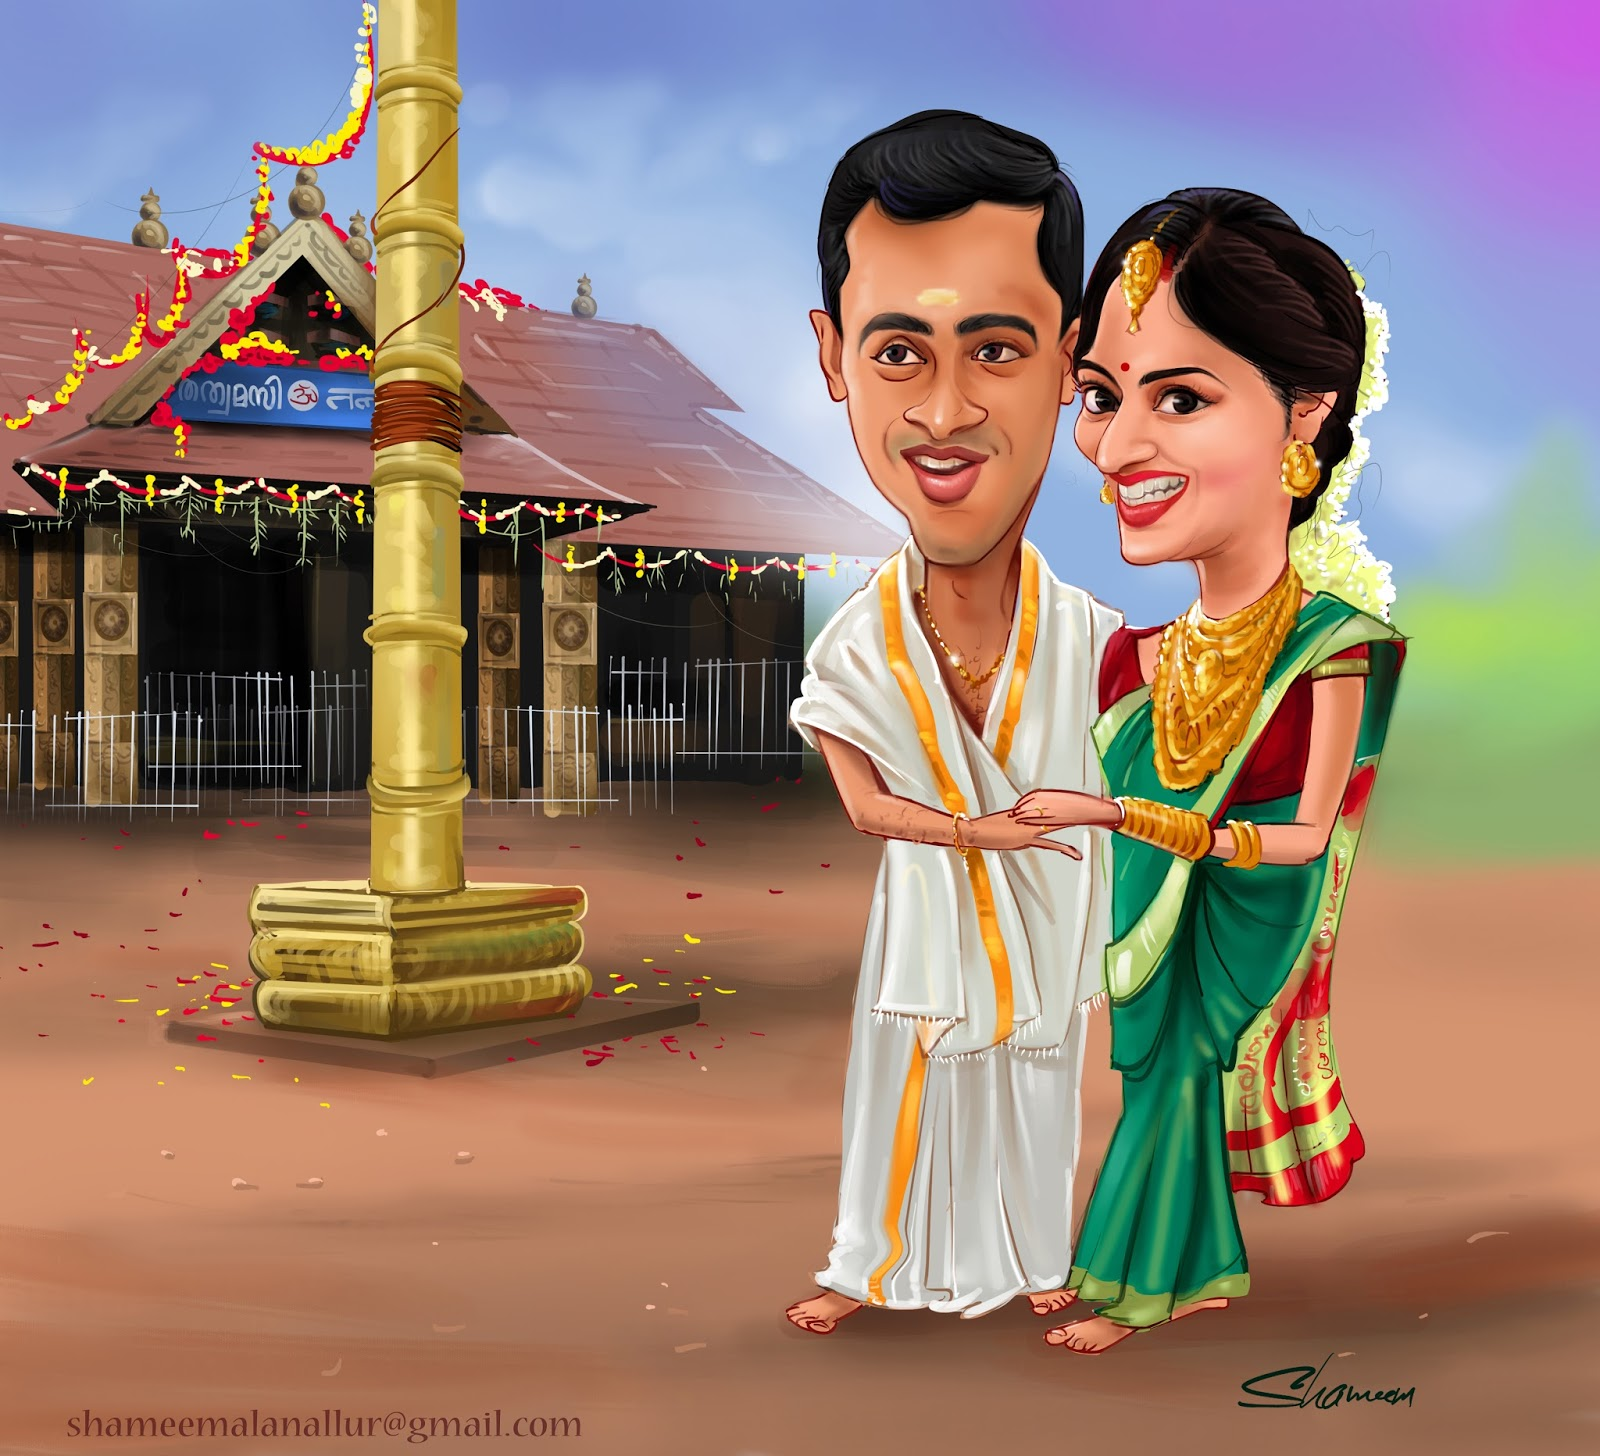 Wedding Gifts For Friends In Kerala : Creative Artist. Shameem : traditional wedding gift caricature